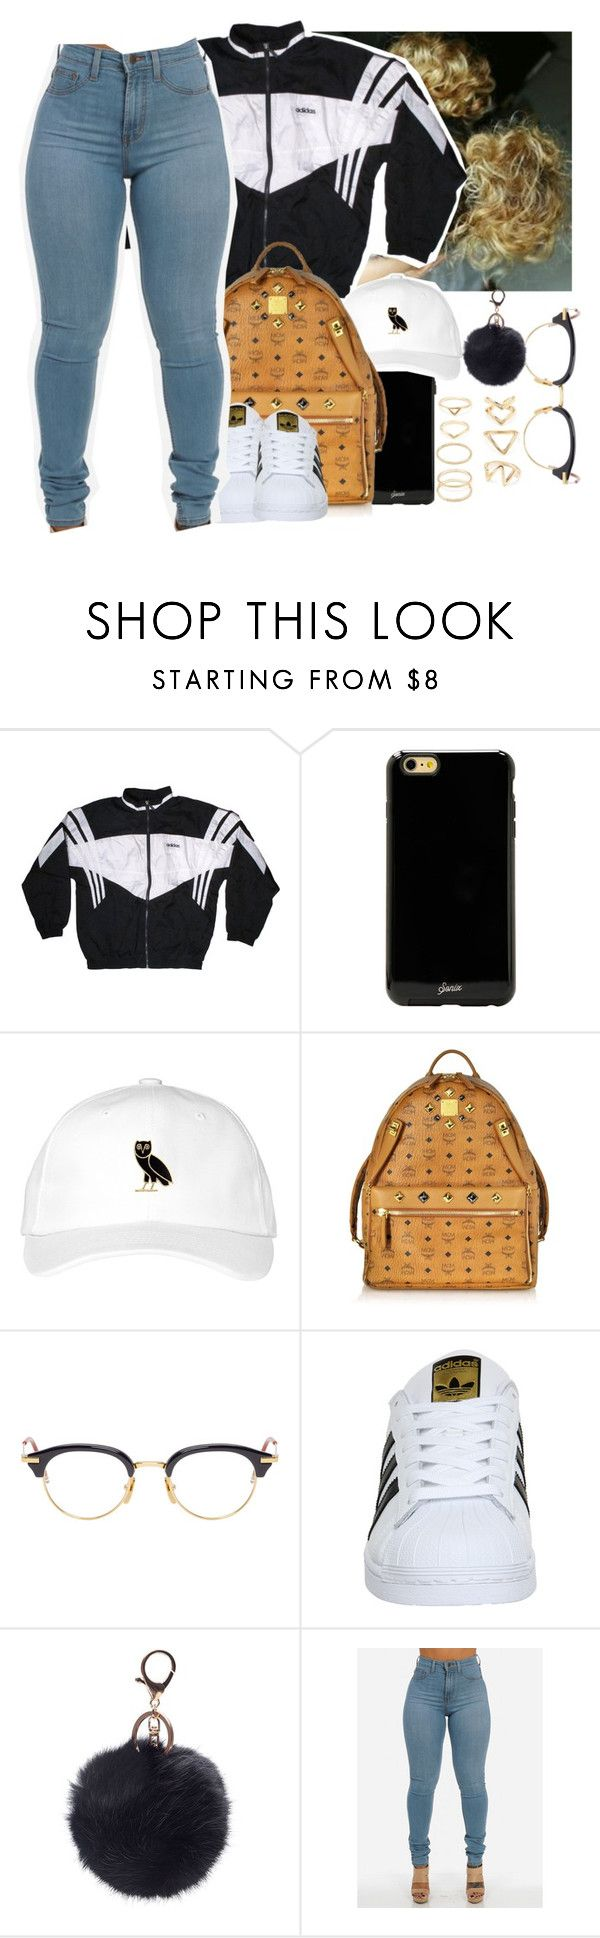 """Untitled #524"" by oh-thatasia ❤ liked on Polyvore featuring adidas, Sonix, MCM, Thom Browne and Forever 21"